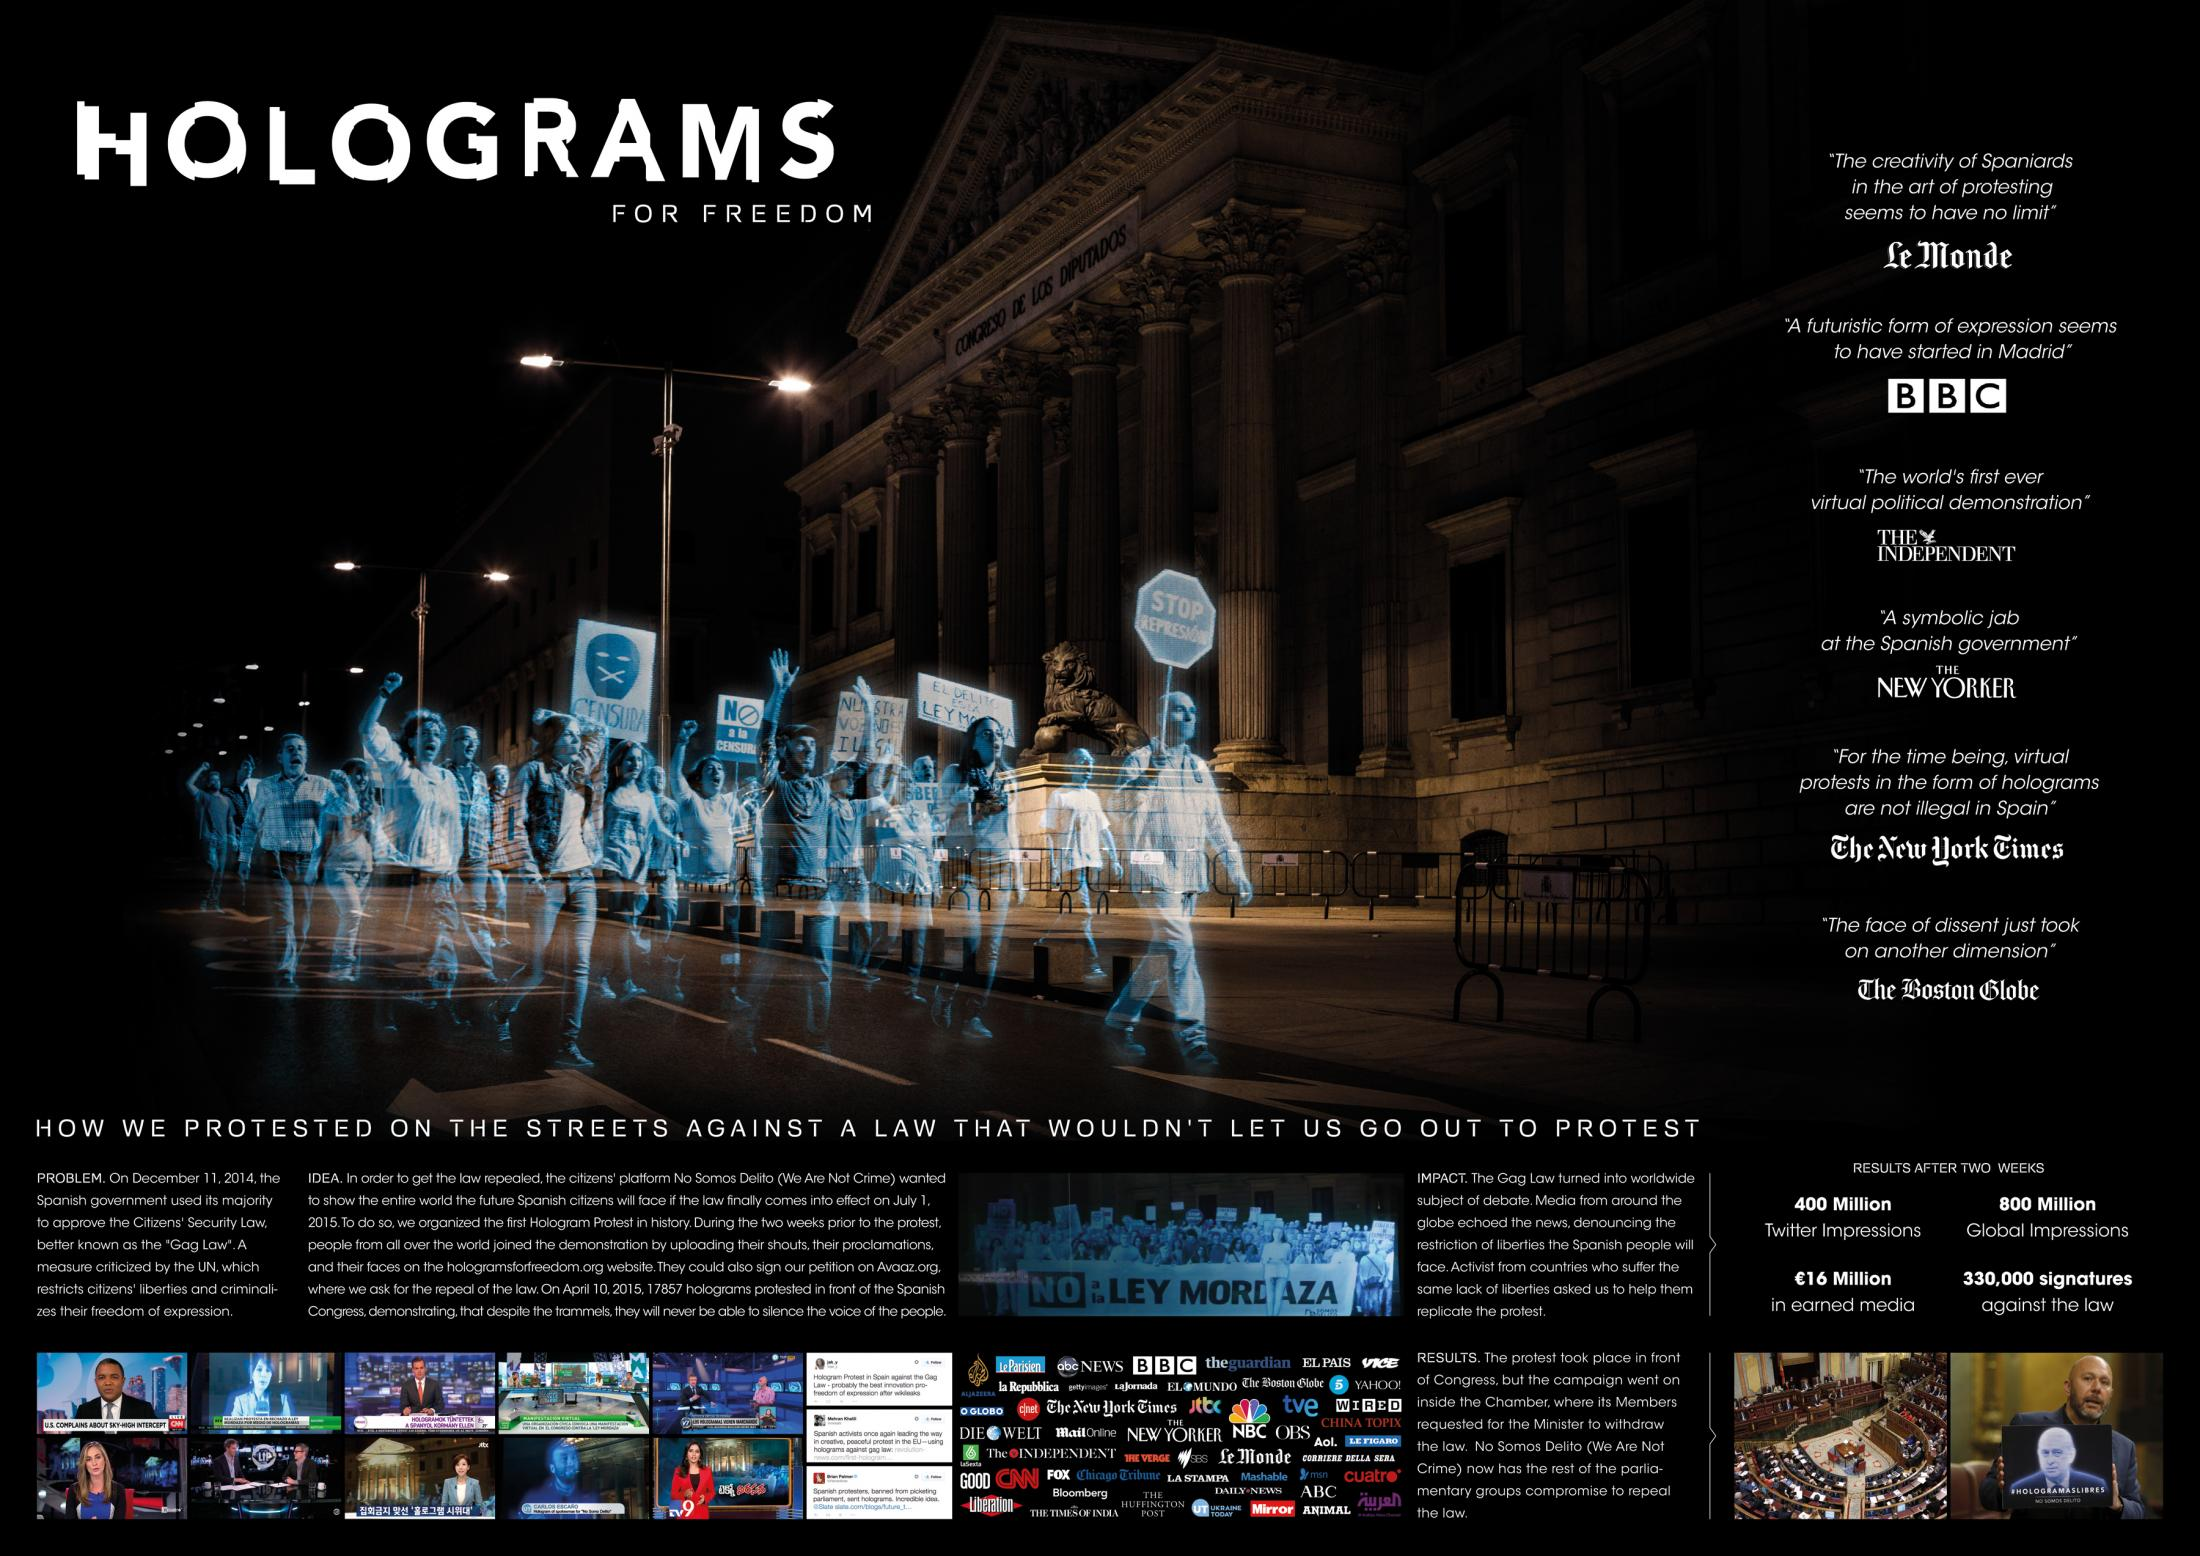 Image Media for Holograms for Freedom